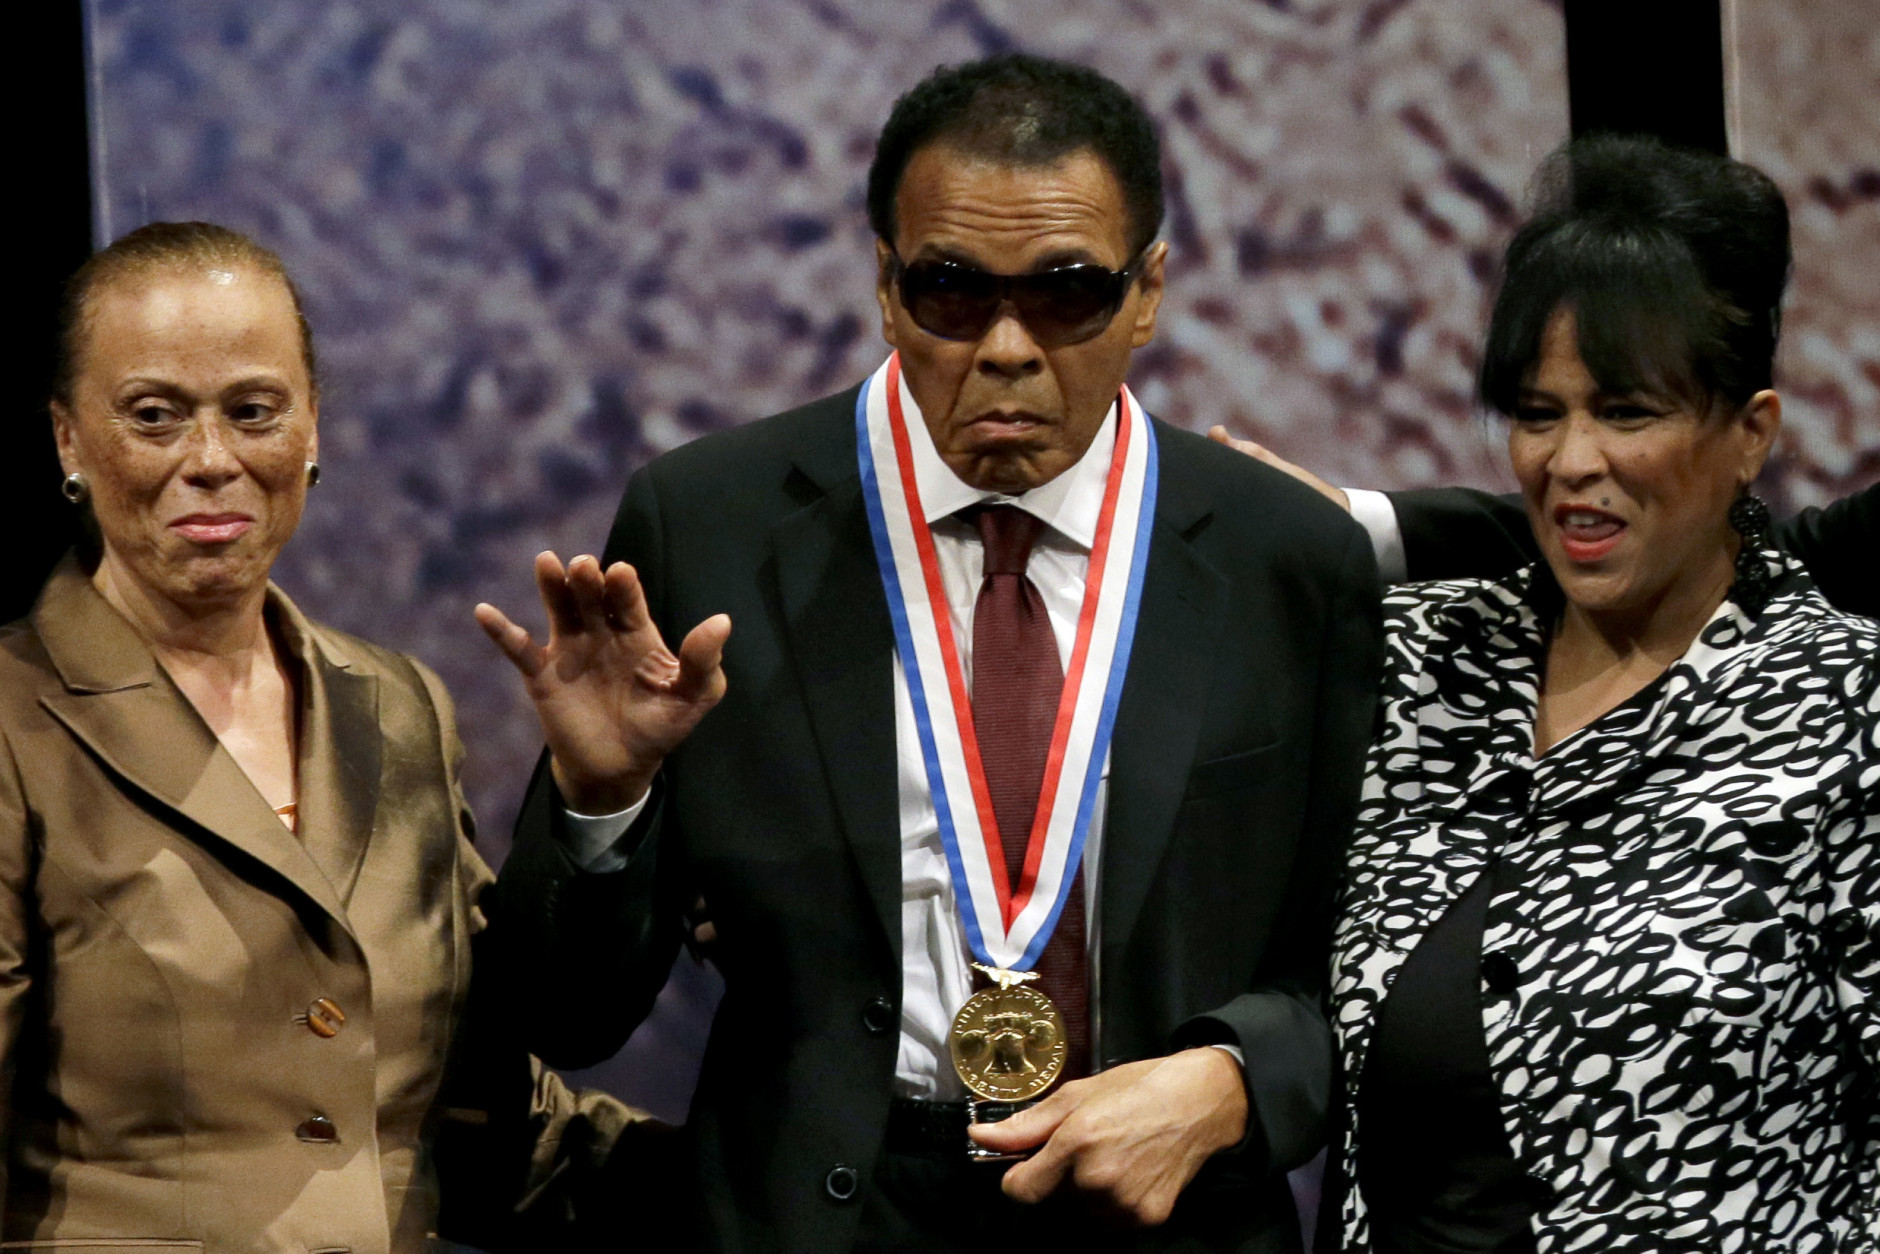 FILE - In this Sept. 13, 2012, file photo, retired boxing champion Muhammad Ali, center, waves alongside his wife Lonnie Ali, left, and his sister-in-law Marilyn Williams, right, after receiving the Liberty Medal during a ceremony at the National Constitution Center in Philadelphia.  Ali, the magnificent heavyweight champion whose fast fists and irrepressible personality transcended sports and captivated the world, has died according to a statement released by his family Friday, June 3, 2016. He was 74. (AP Photo/Matt Slocum, File)